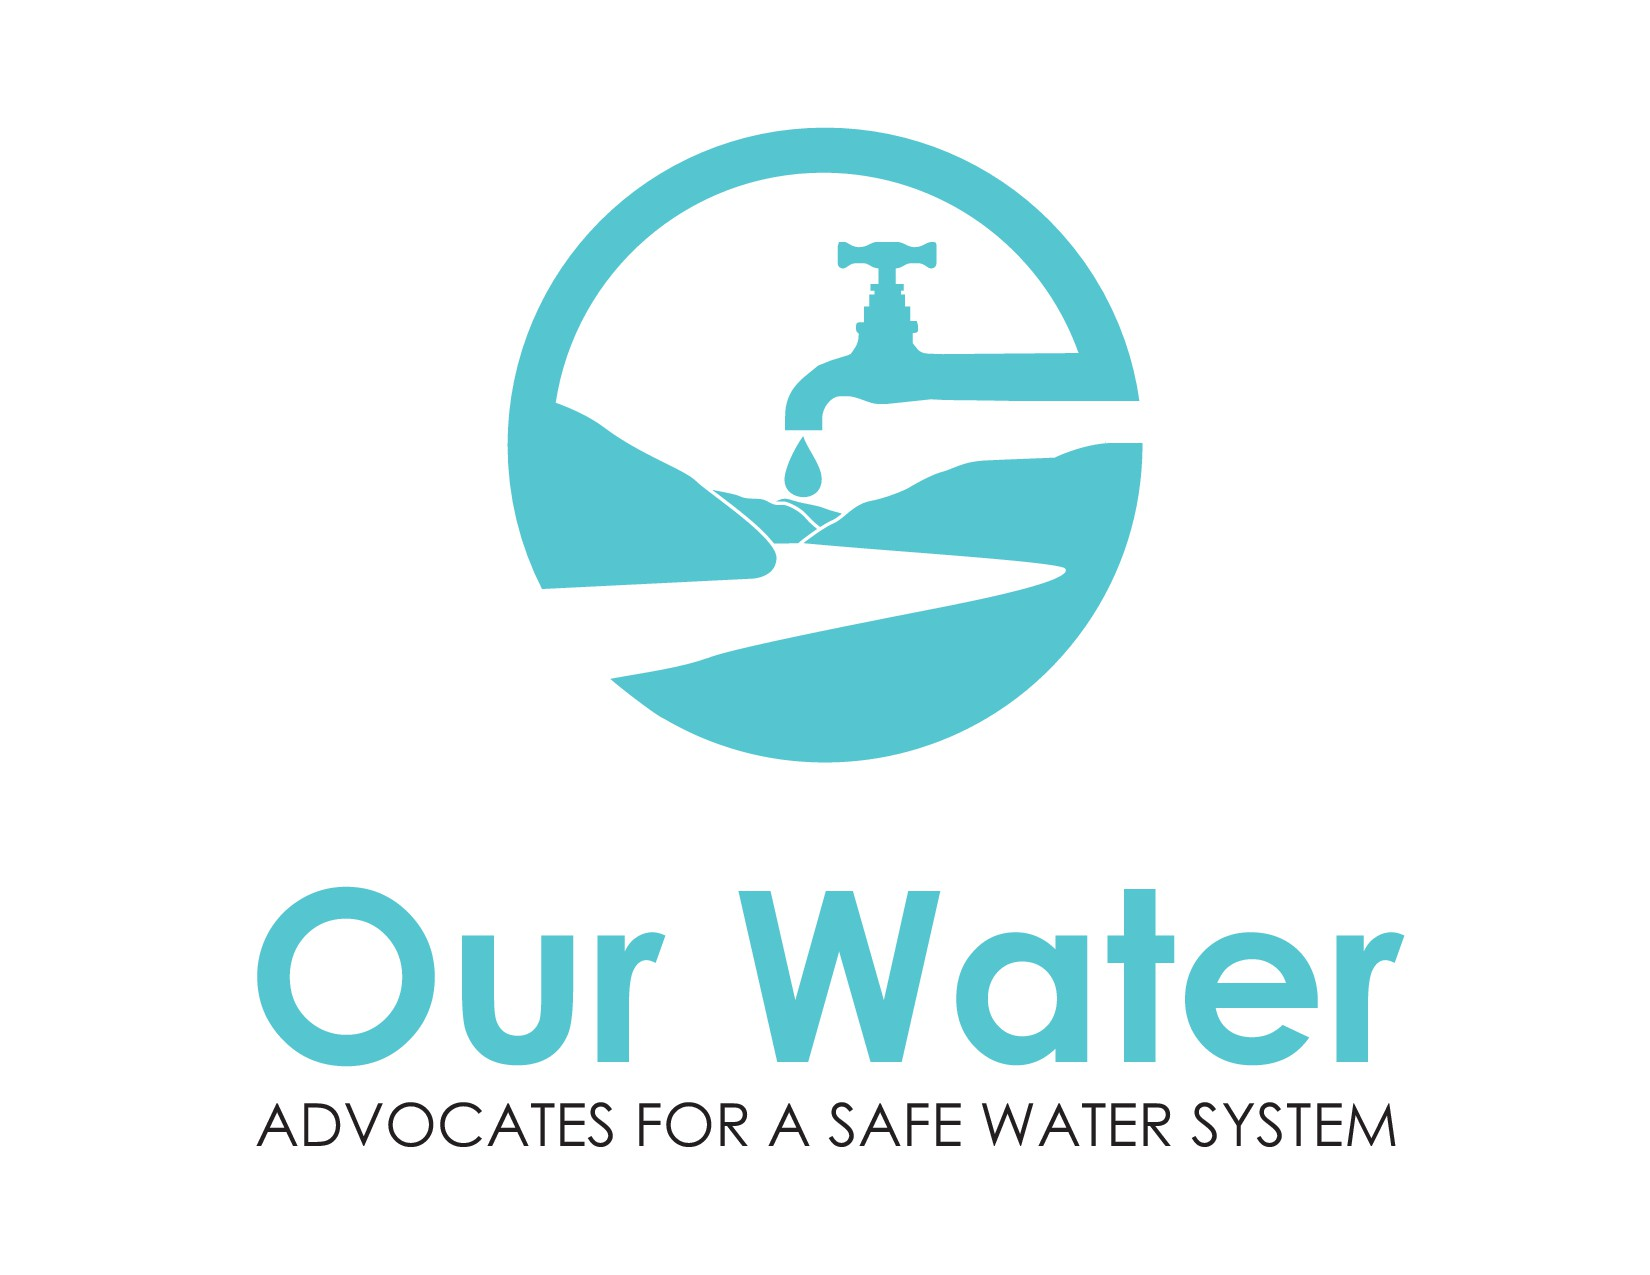 Create a powerful logo for our community's campaign for a public water system!